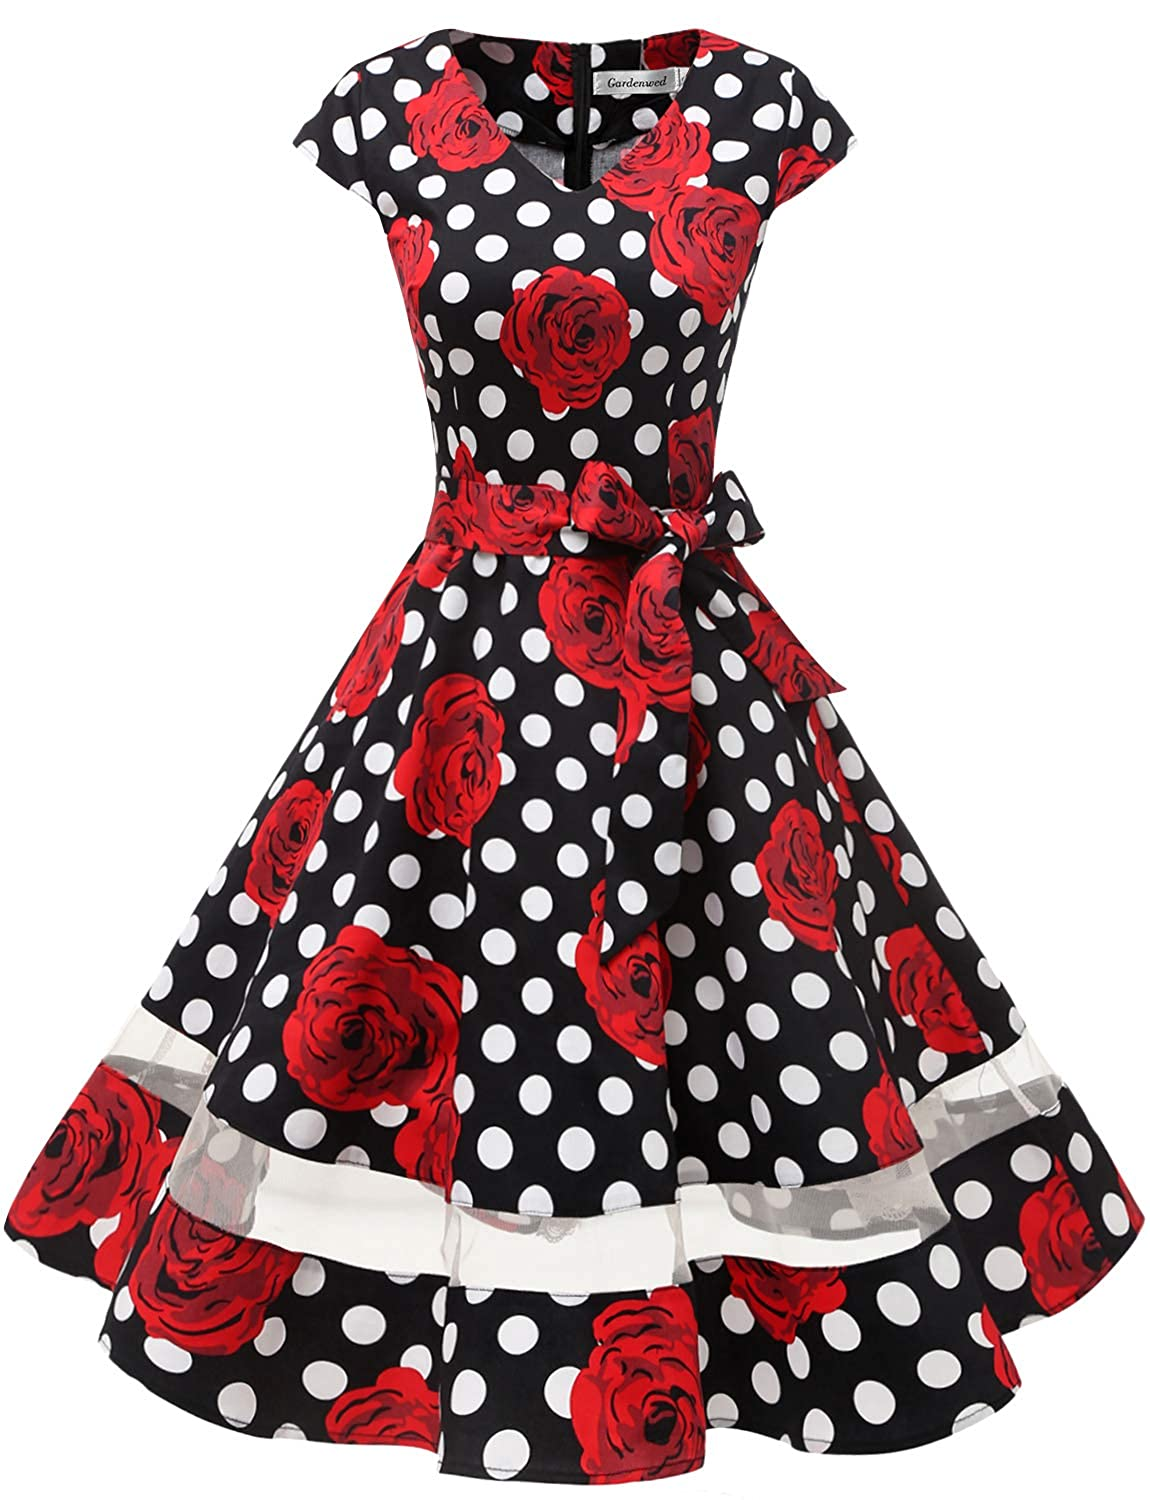 a1c35ff925f1 Amazon.com: Gardenwed Women's 1950s Rockabilly Cocktail Party Dress Retro  Vintage Swing Dress Cap-Sleeve V Neck: Clothing